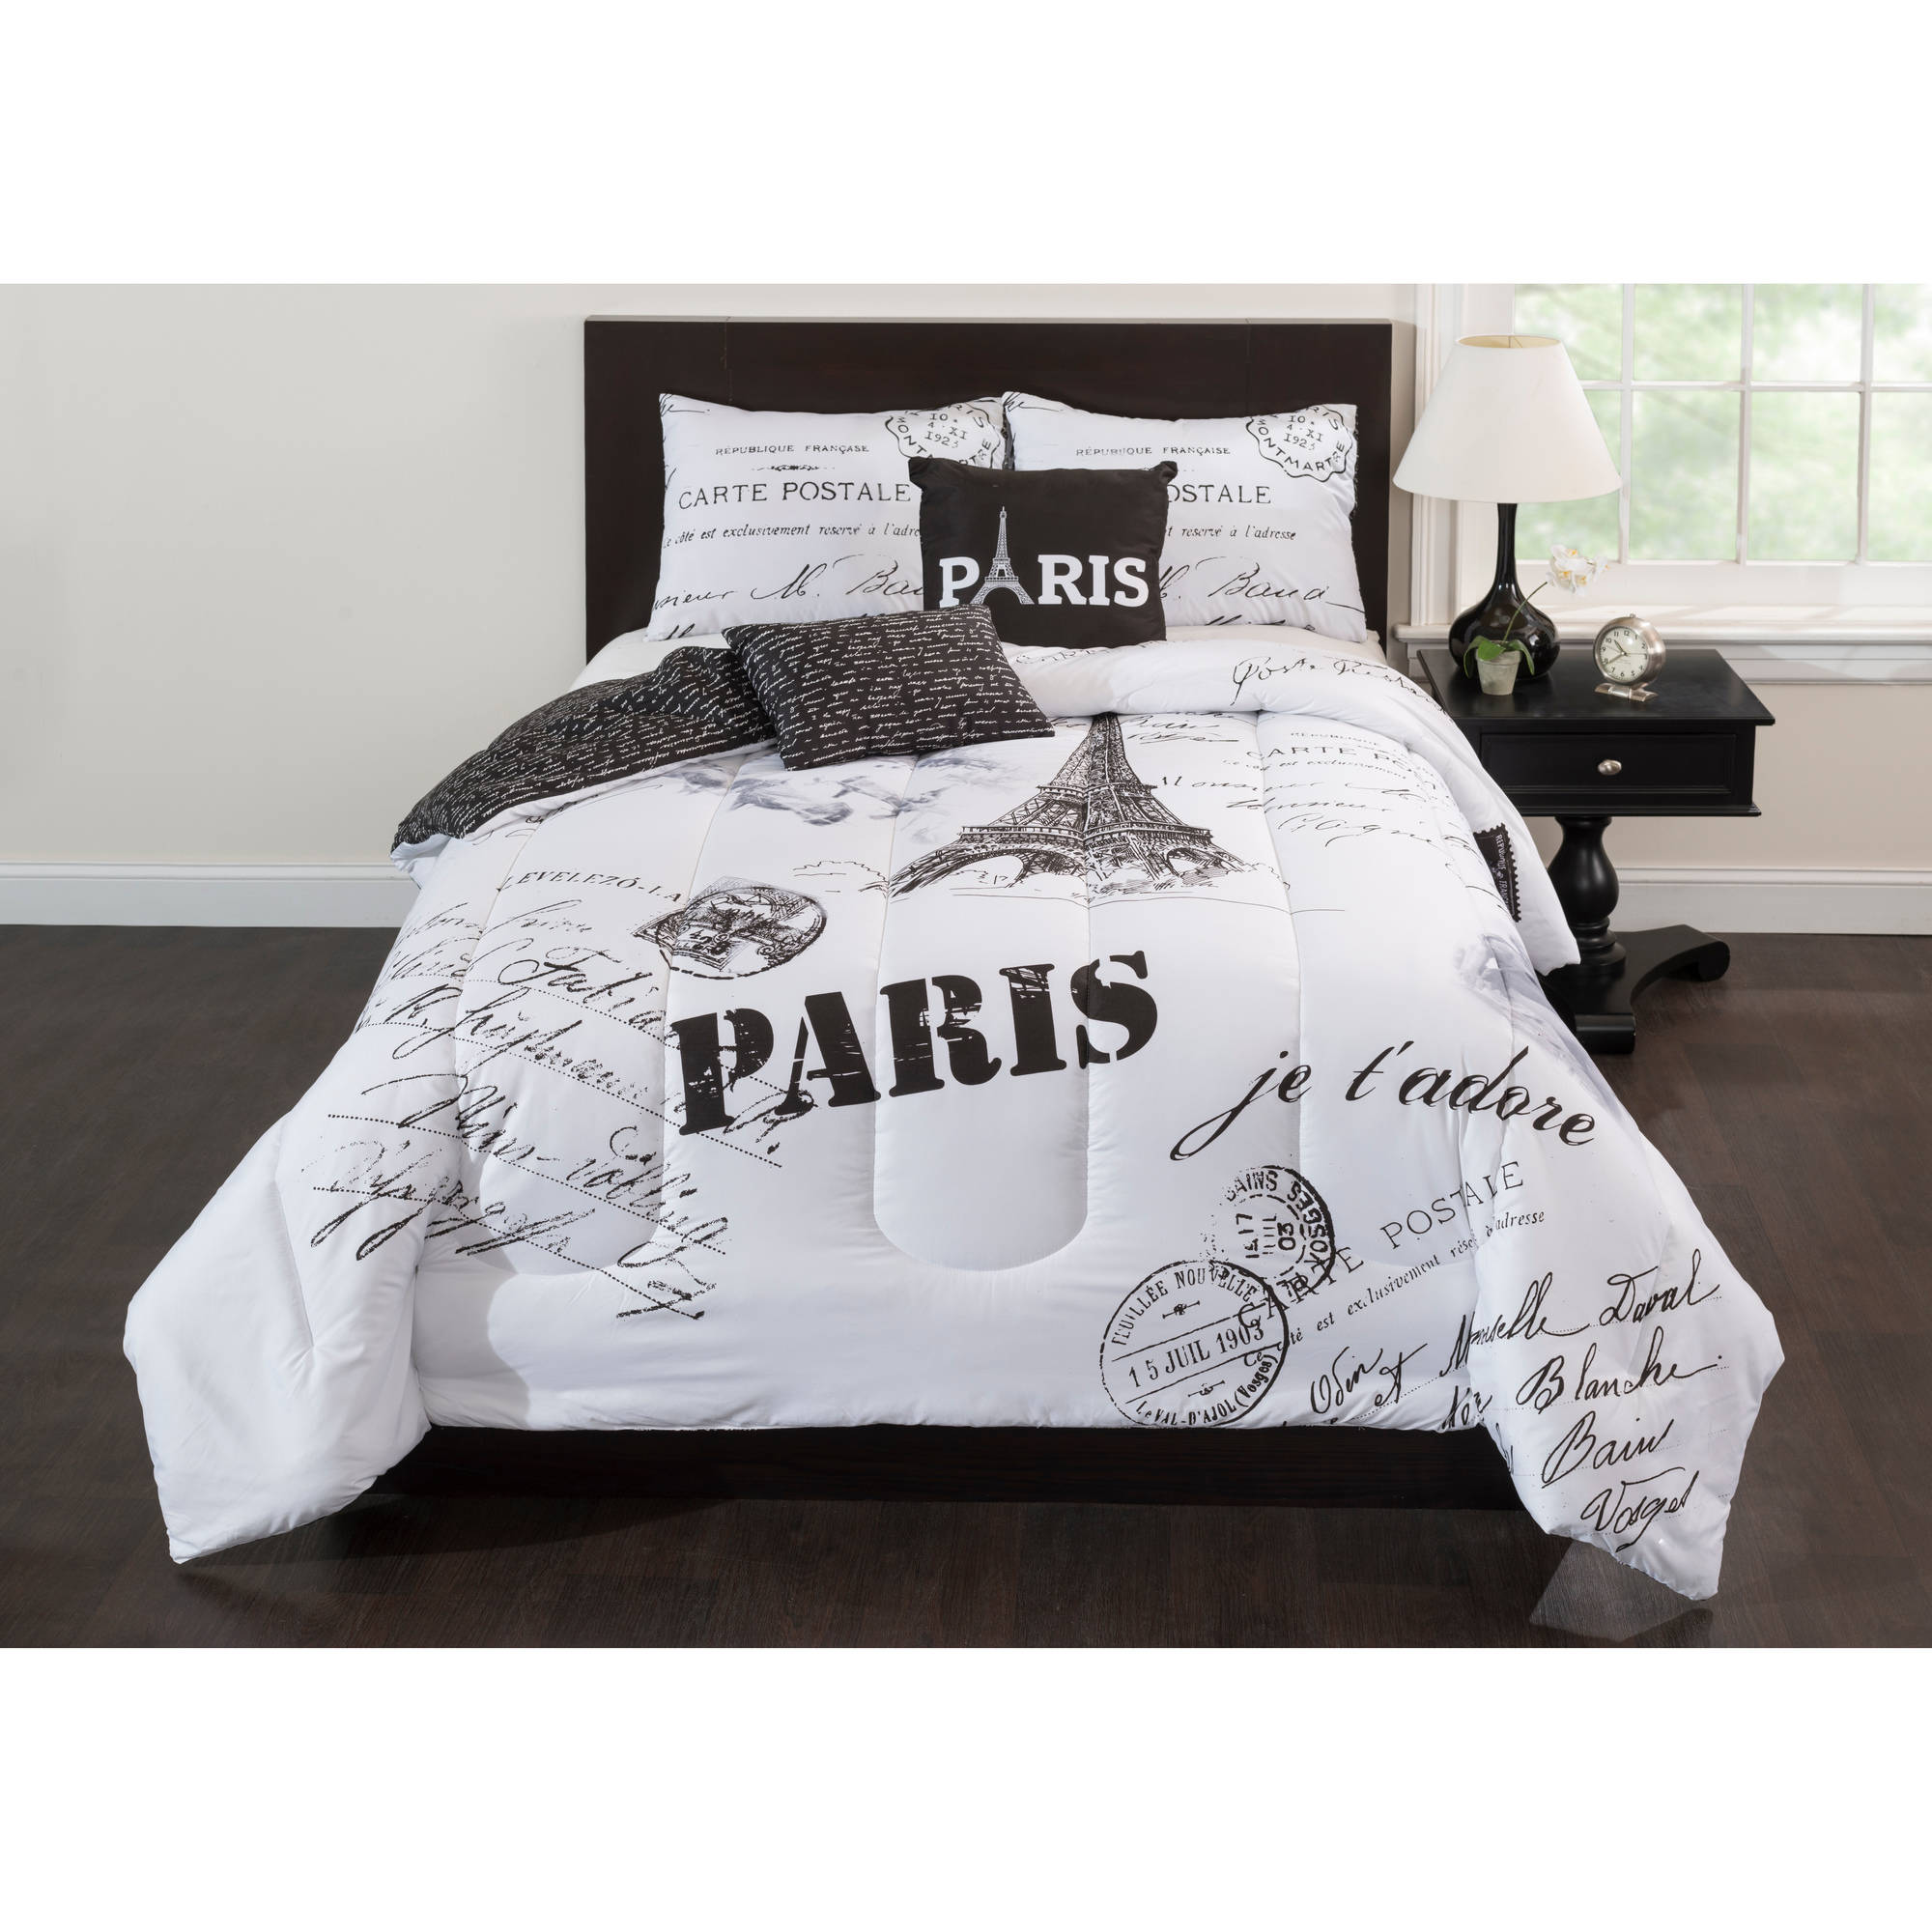 Casa J'Adore 5-Piece Bedding Comforter Set